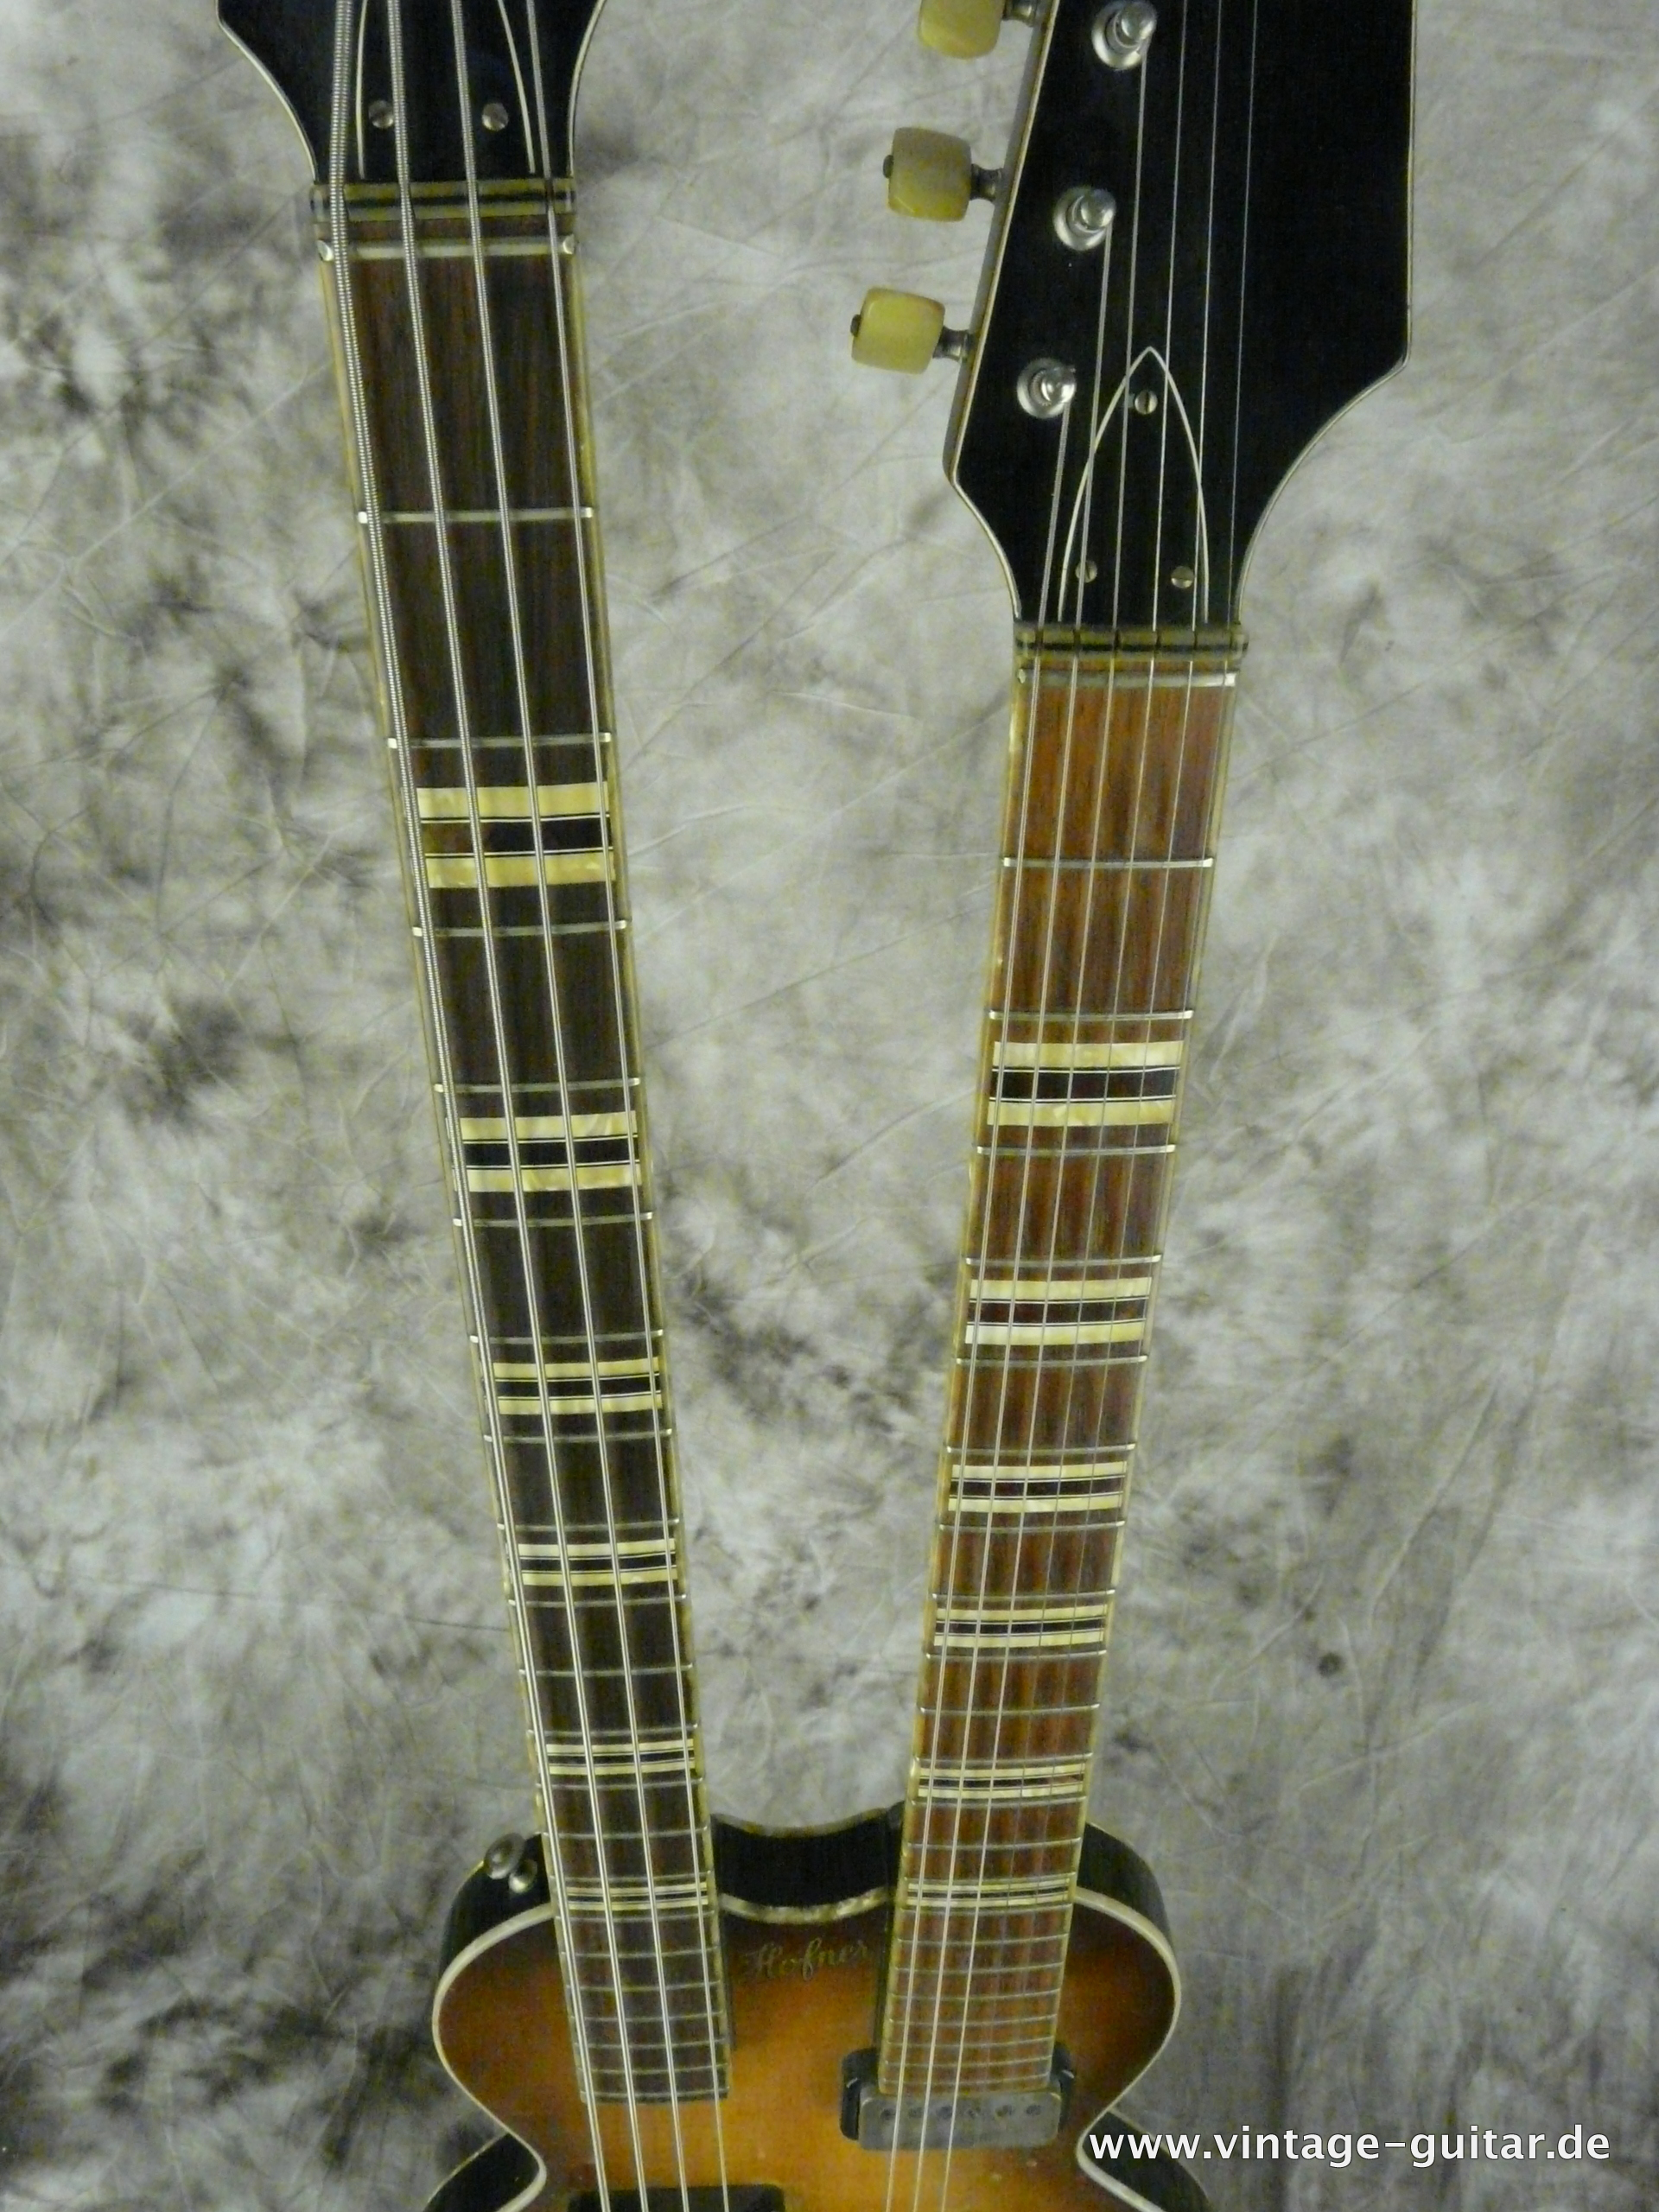 img/vintage/2648/Hofner-Double-Neck-Guitar-and-Bass-Model-191-010.JPG